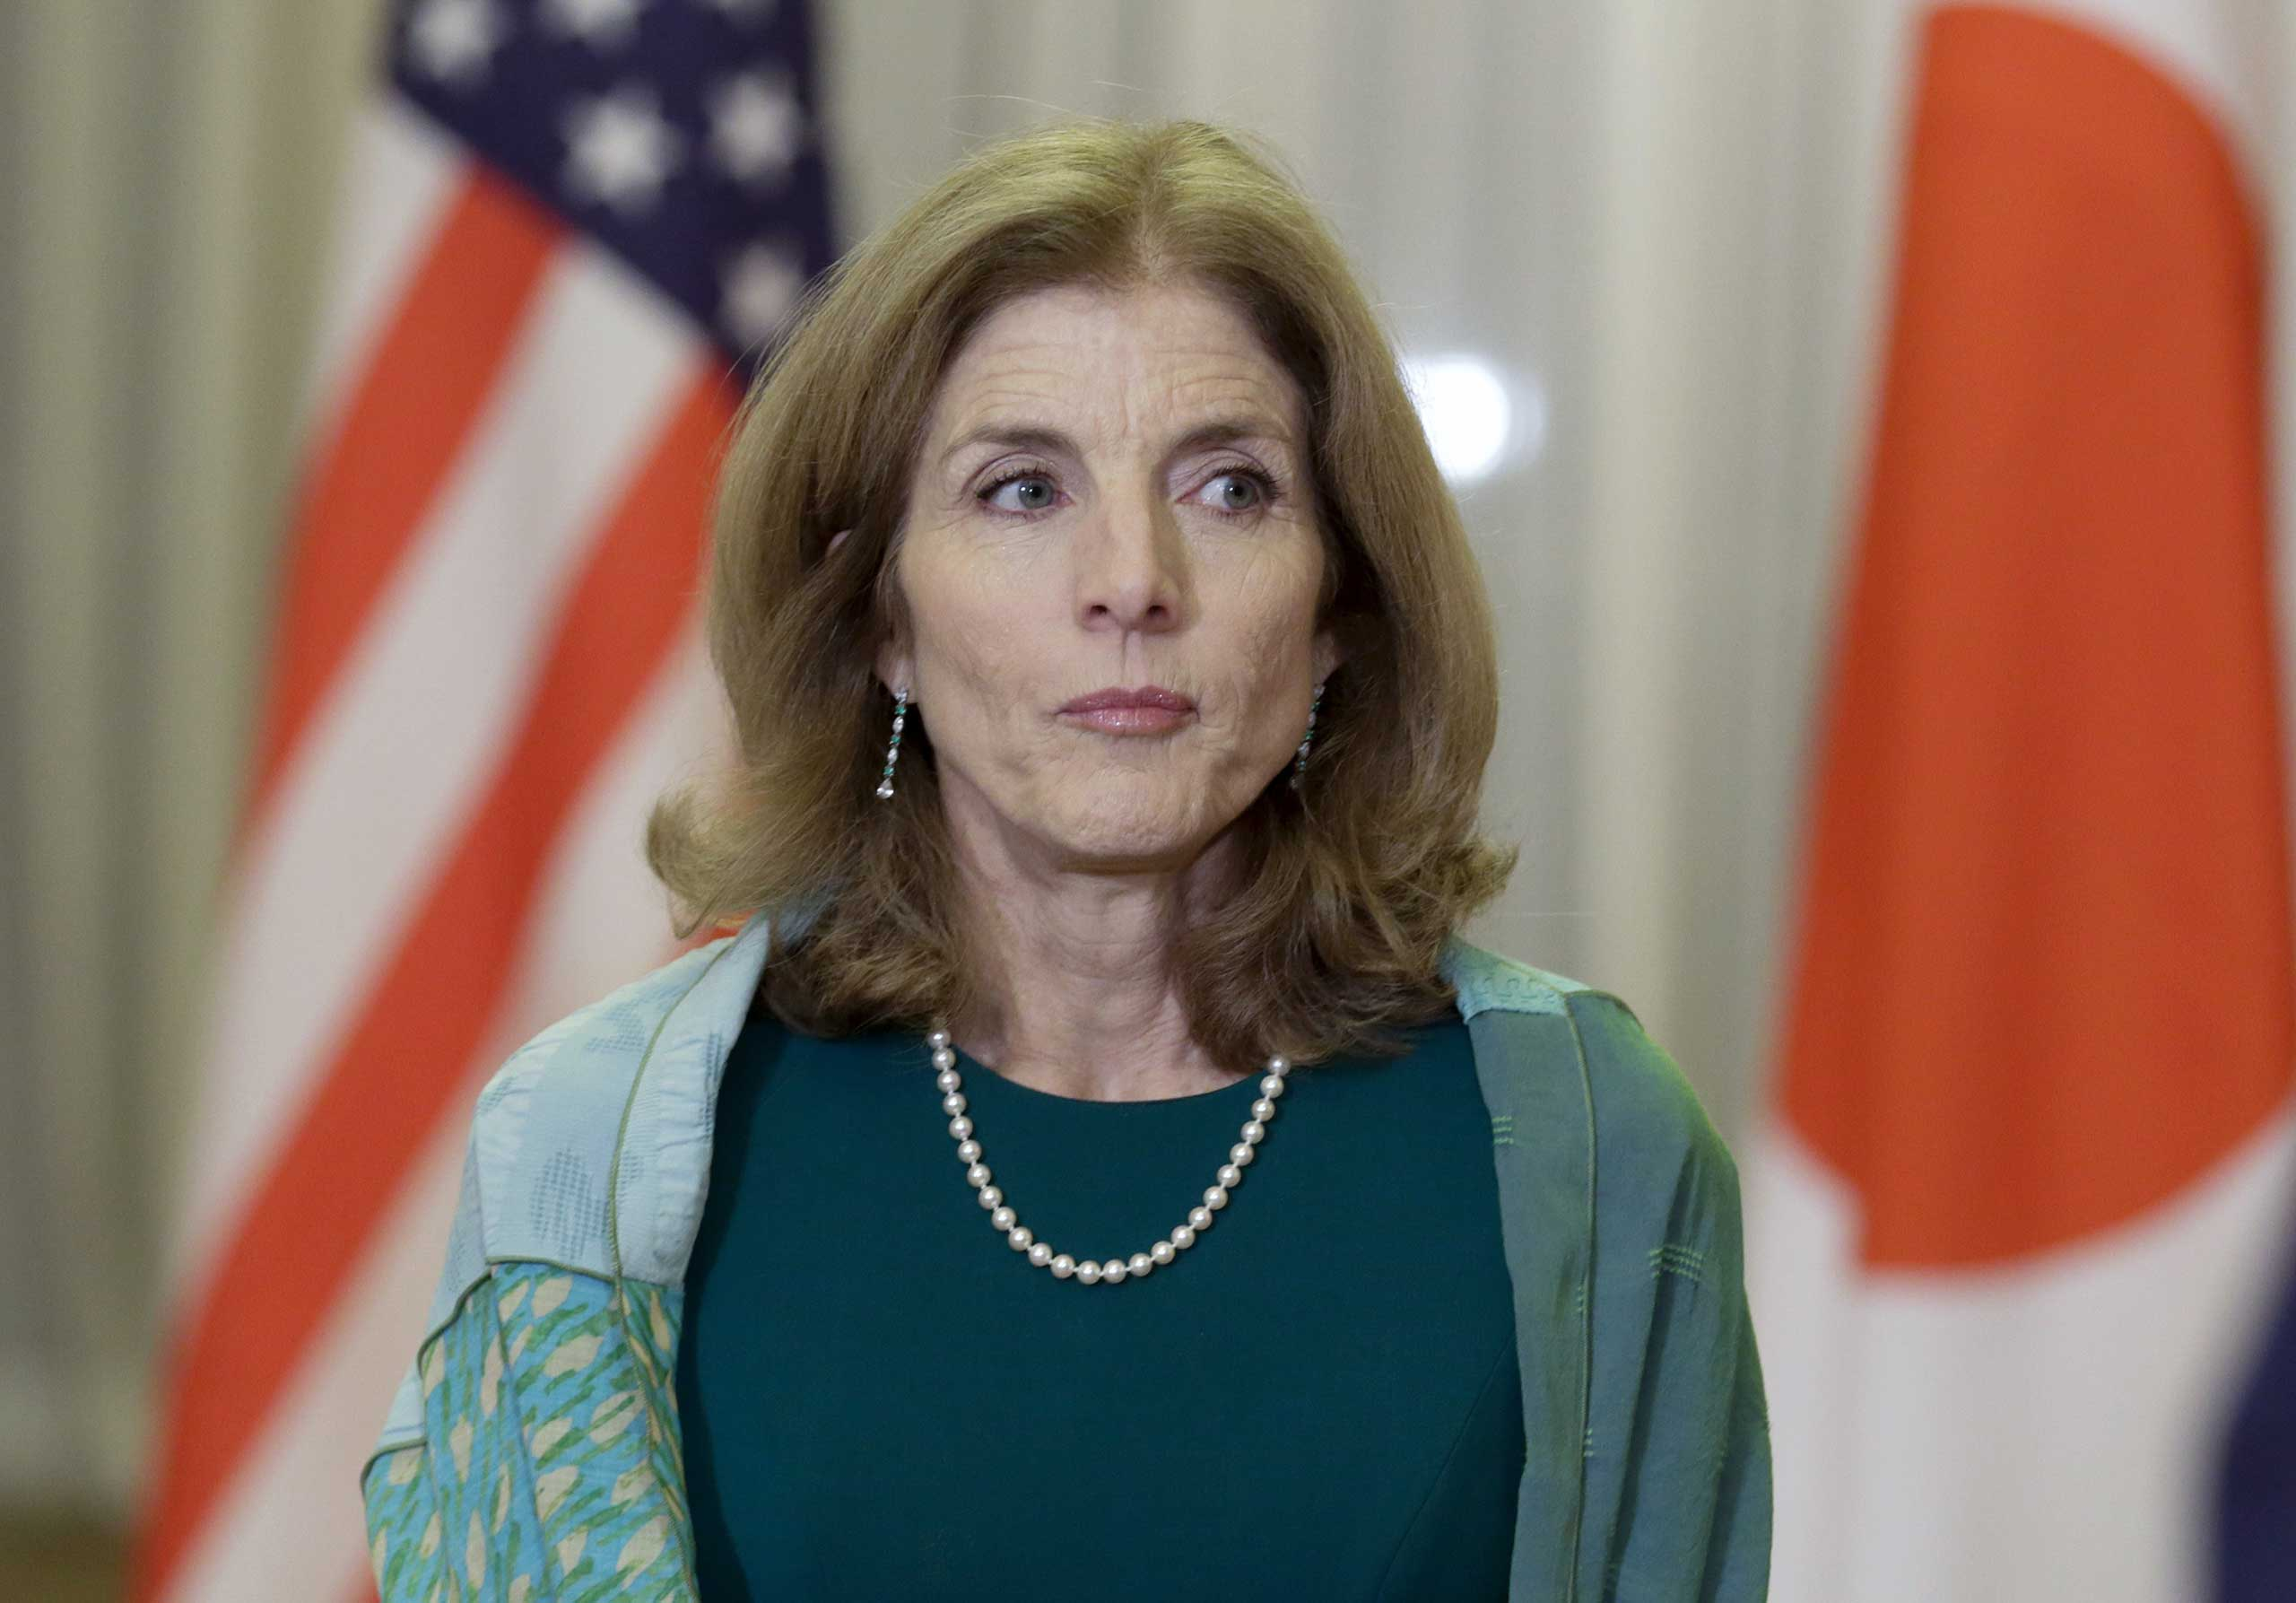 U.S. Ambassador to Japan Caroline Kennedy in Tokyo on March 17, 2015